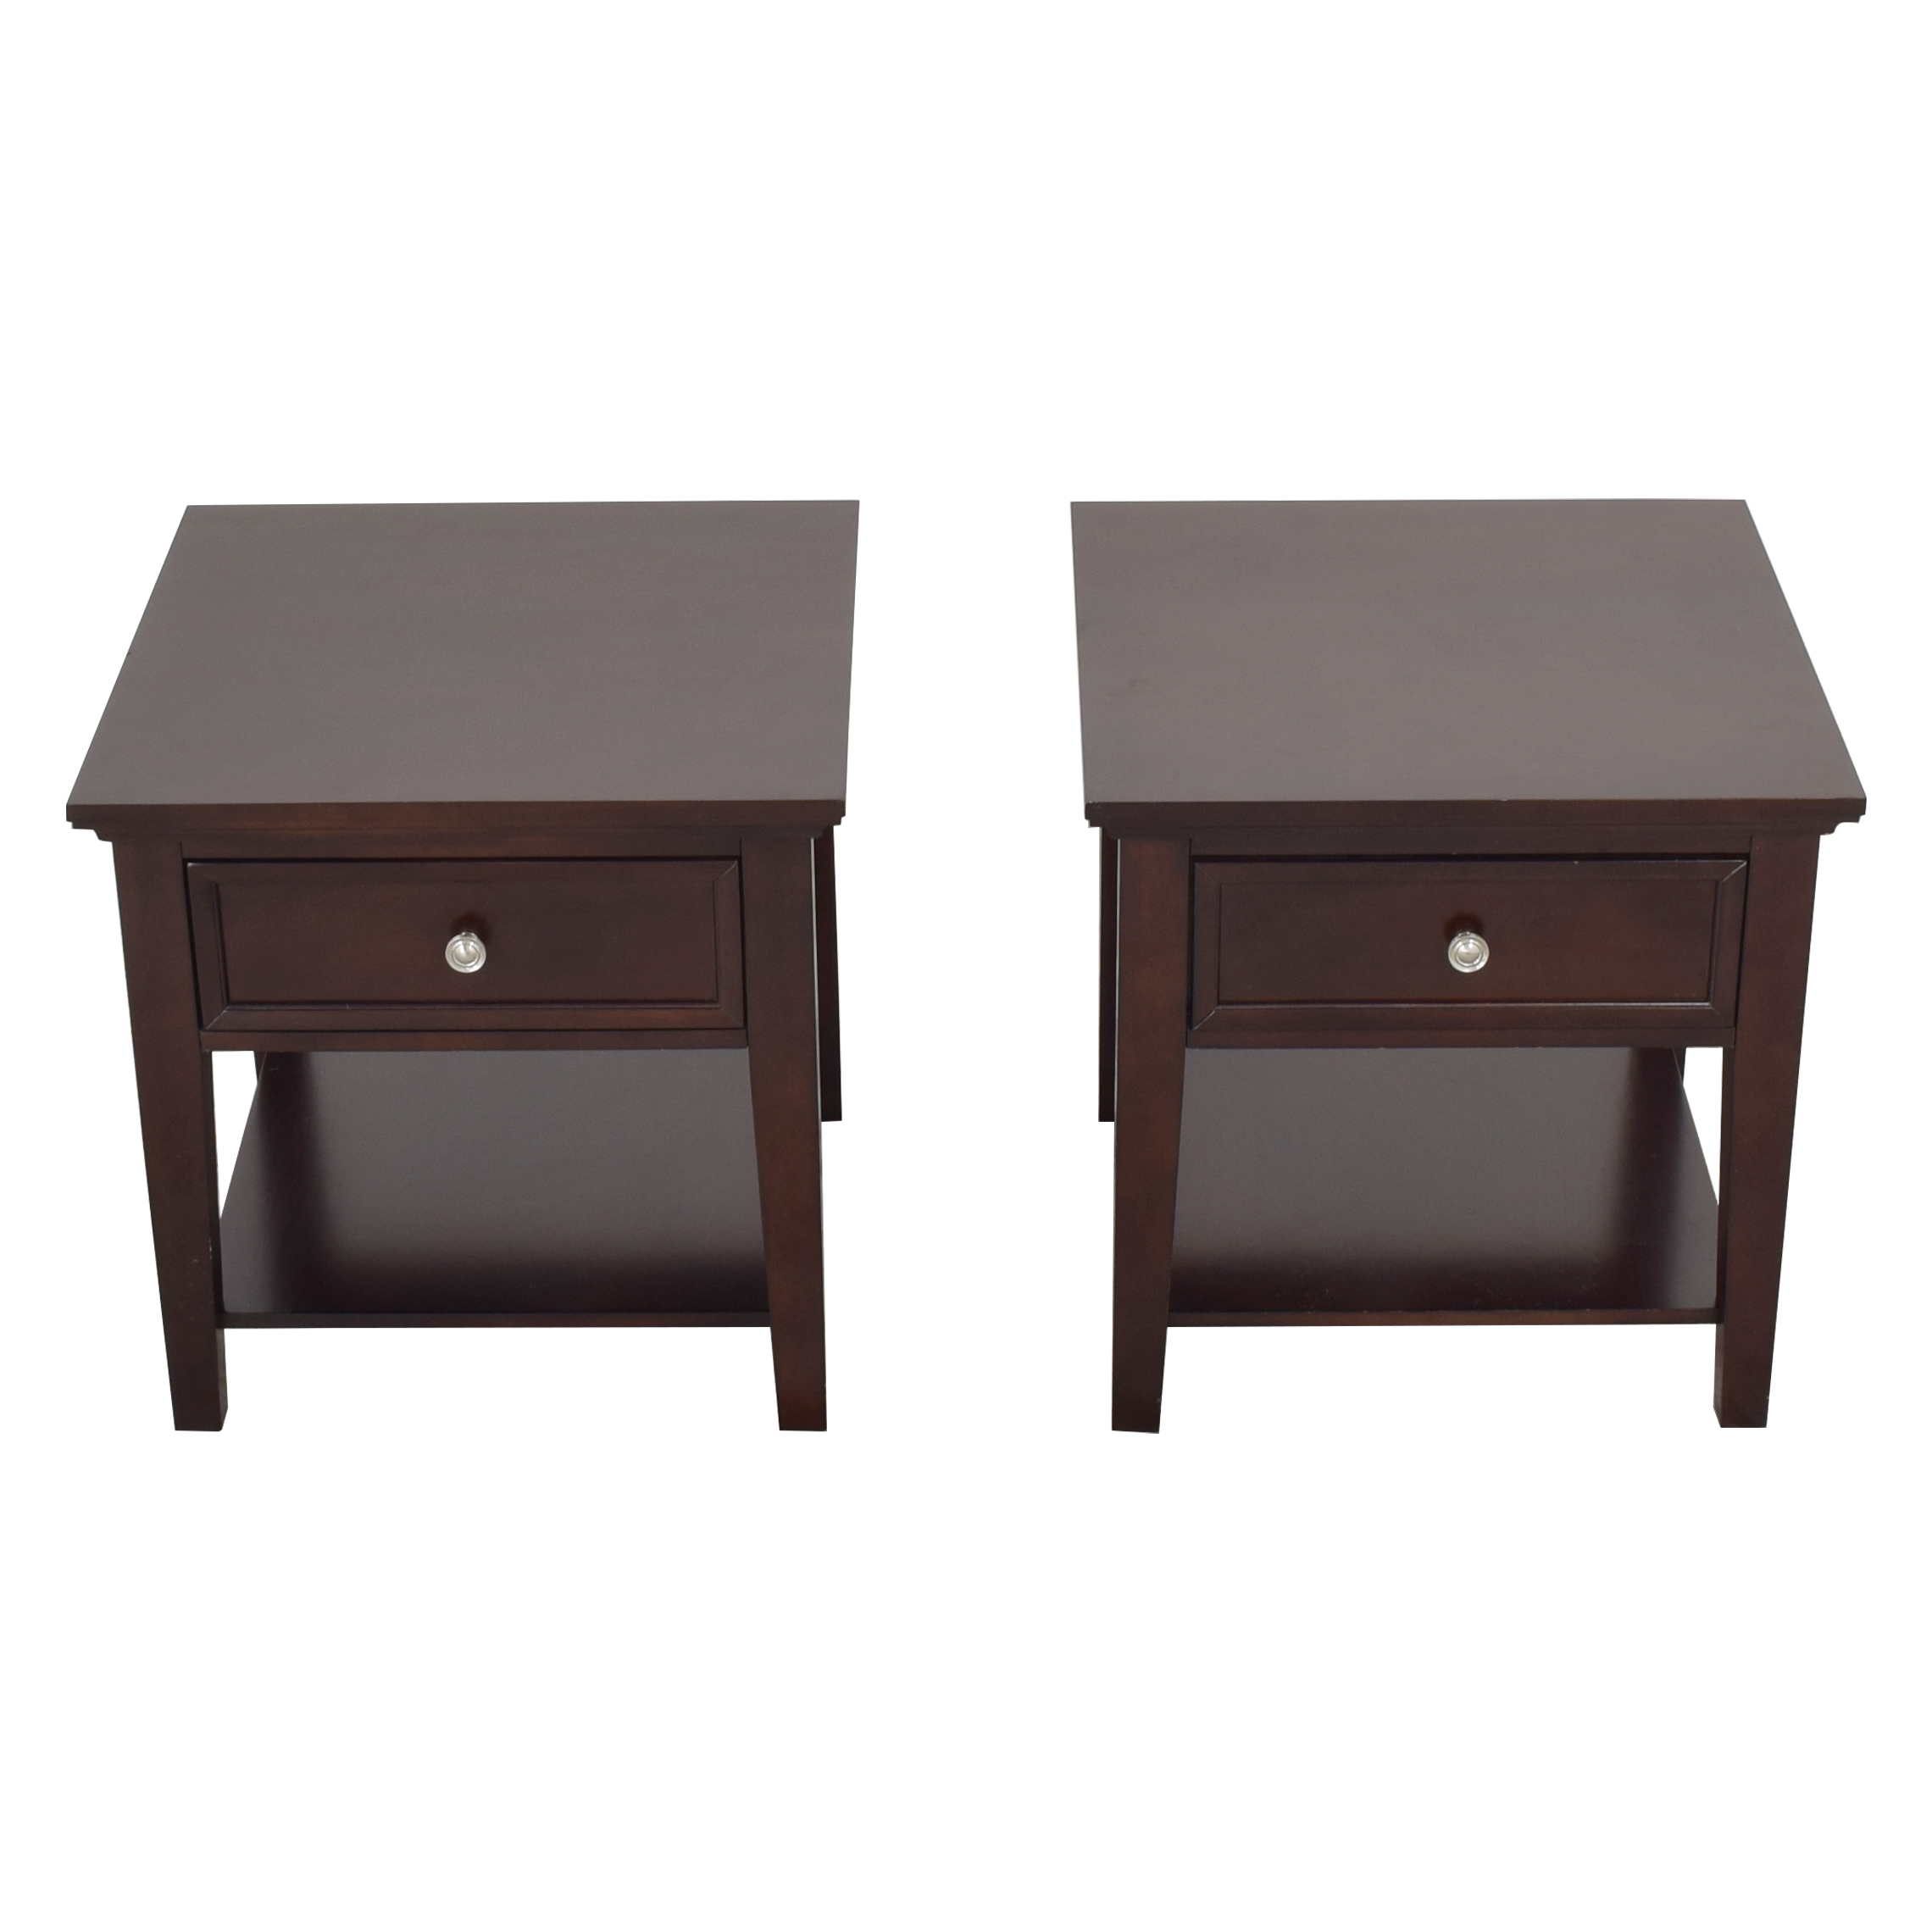 Coaster Single Drawer Cappuccino End Tables / End Tables